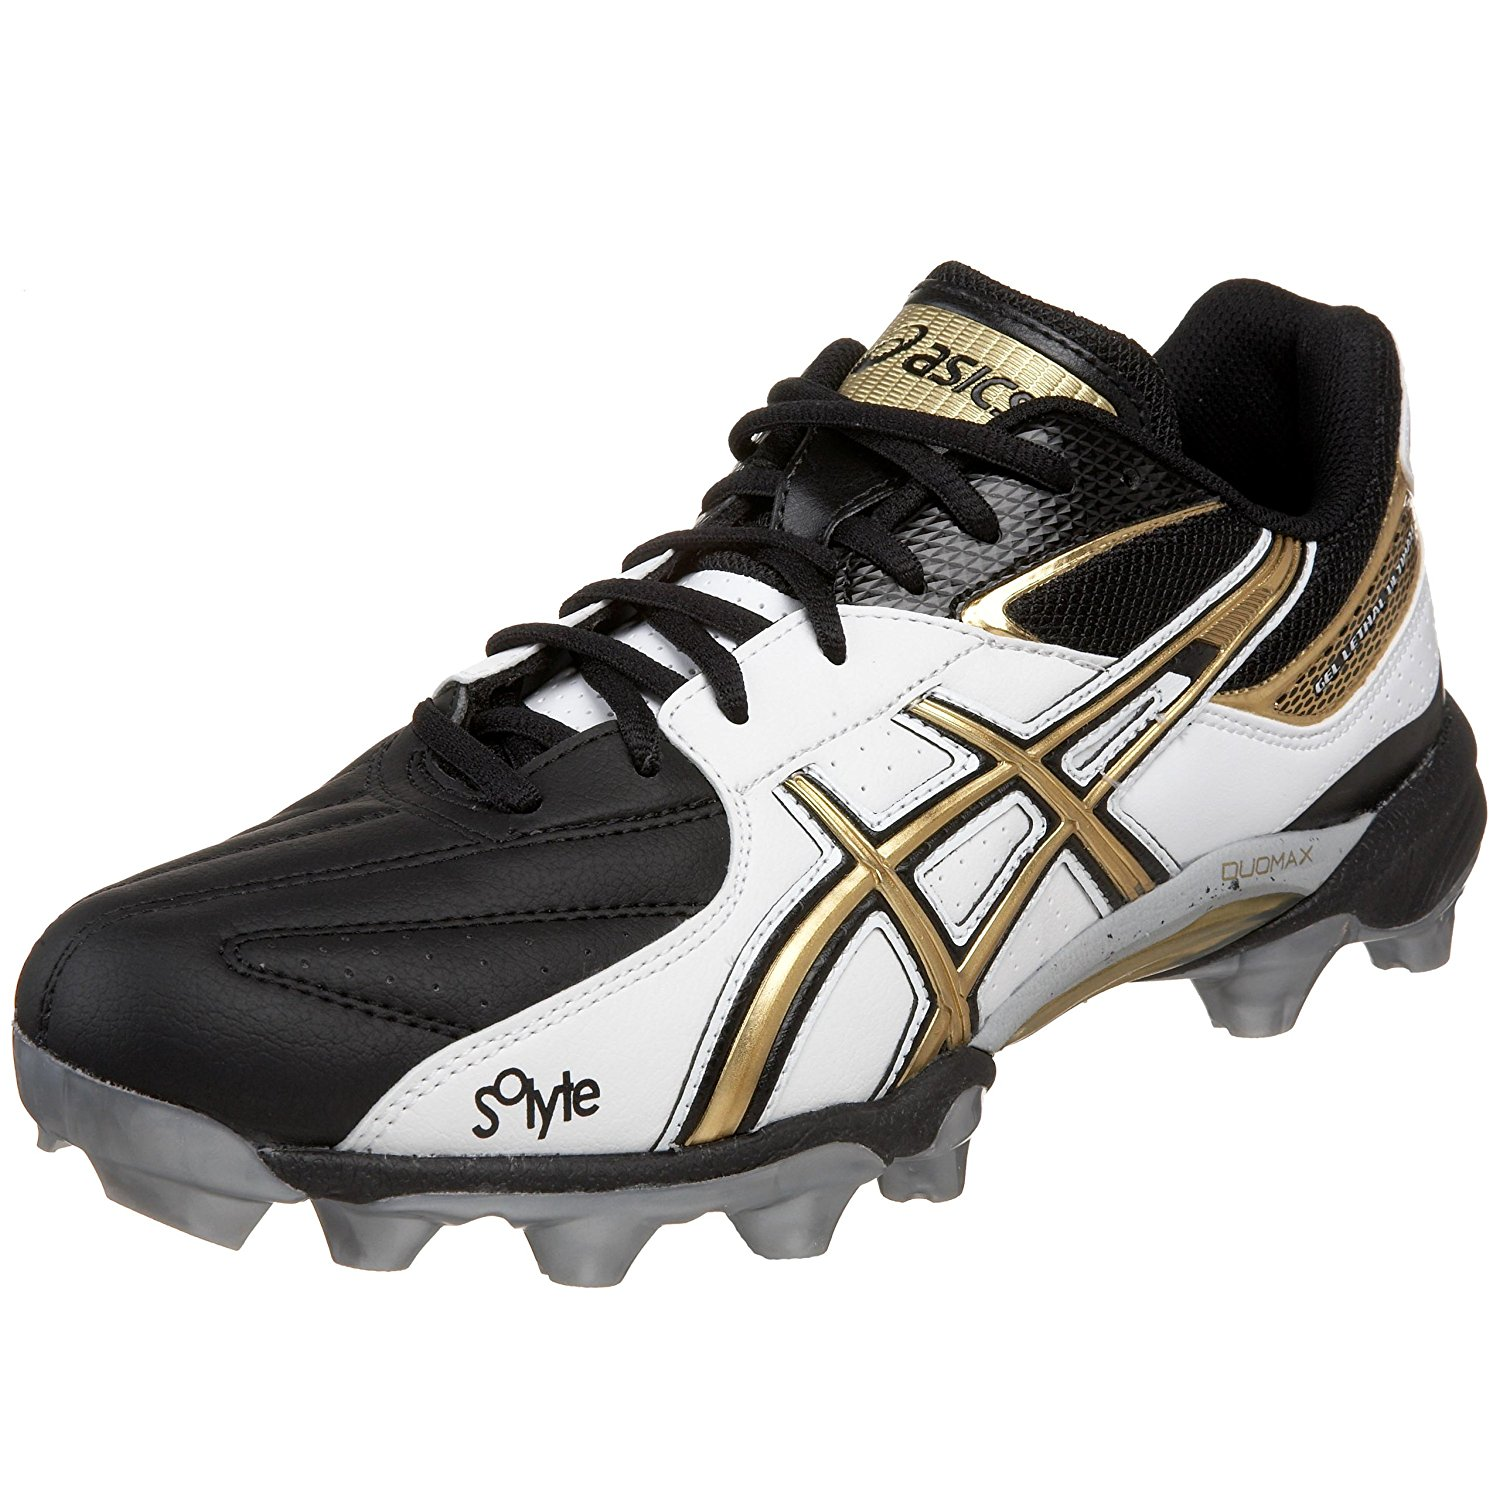 6ec6611d33e2 Get Quotations · ASICS Men s GEL-Lethal Ultimate Field Shoe